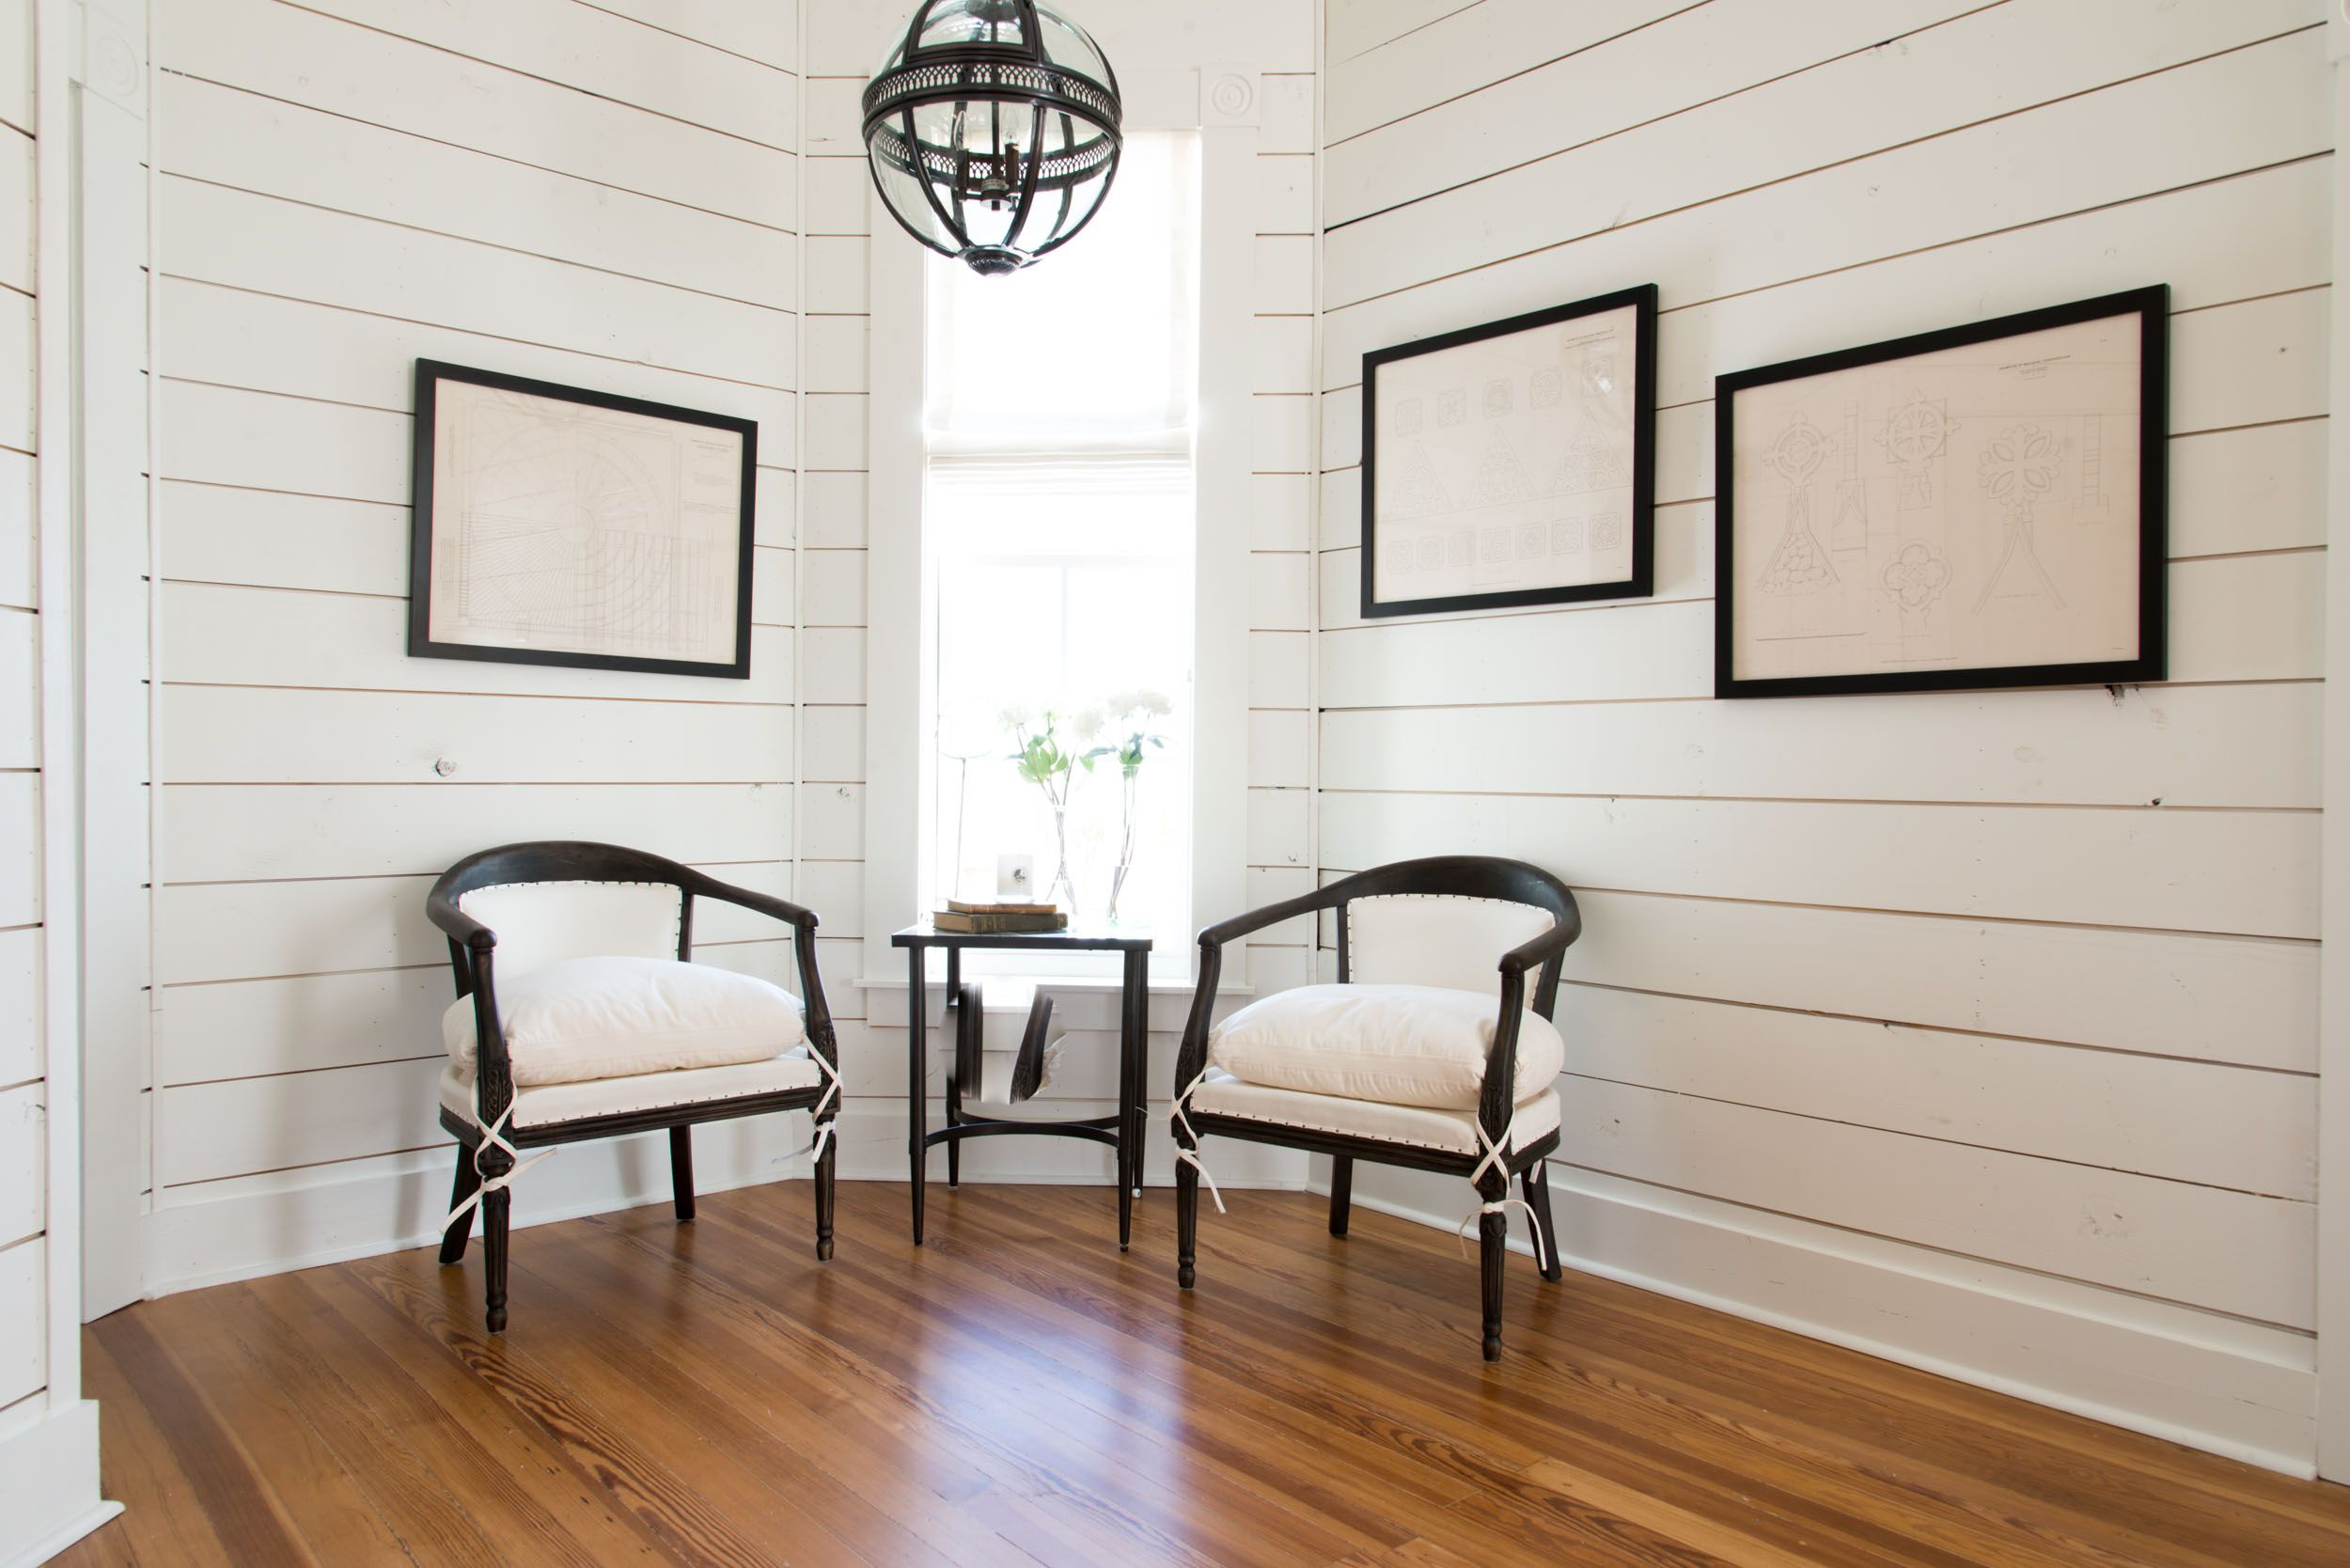 Joanna gaines hallway decor  Pin by Stacey Campbell on Cushions  Pinterest